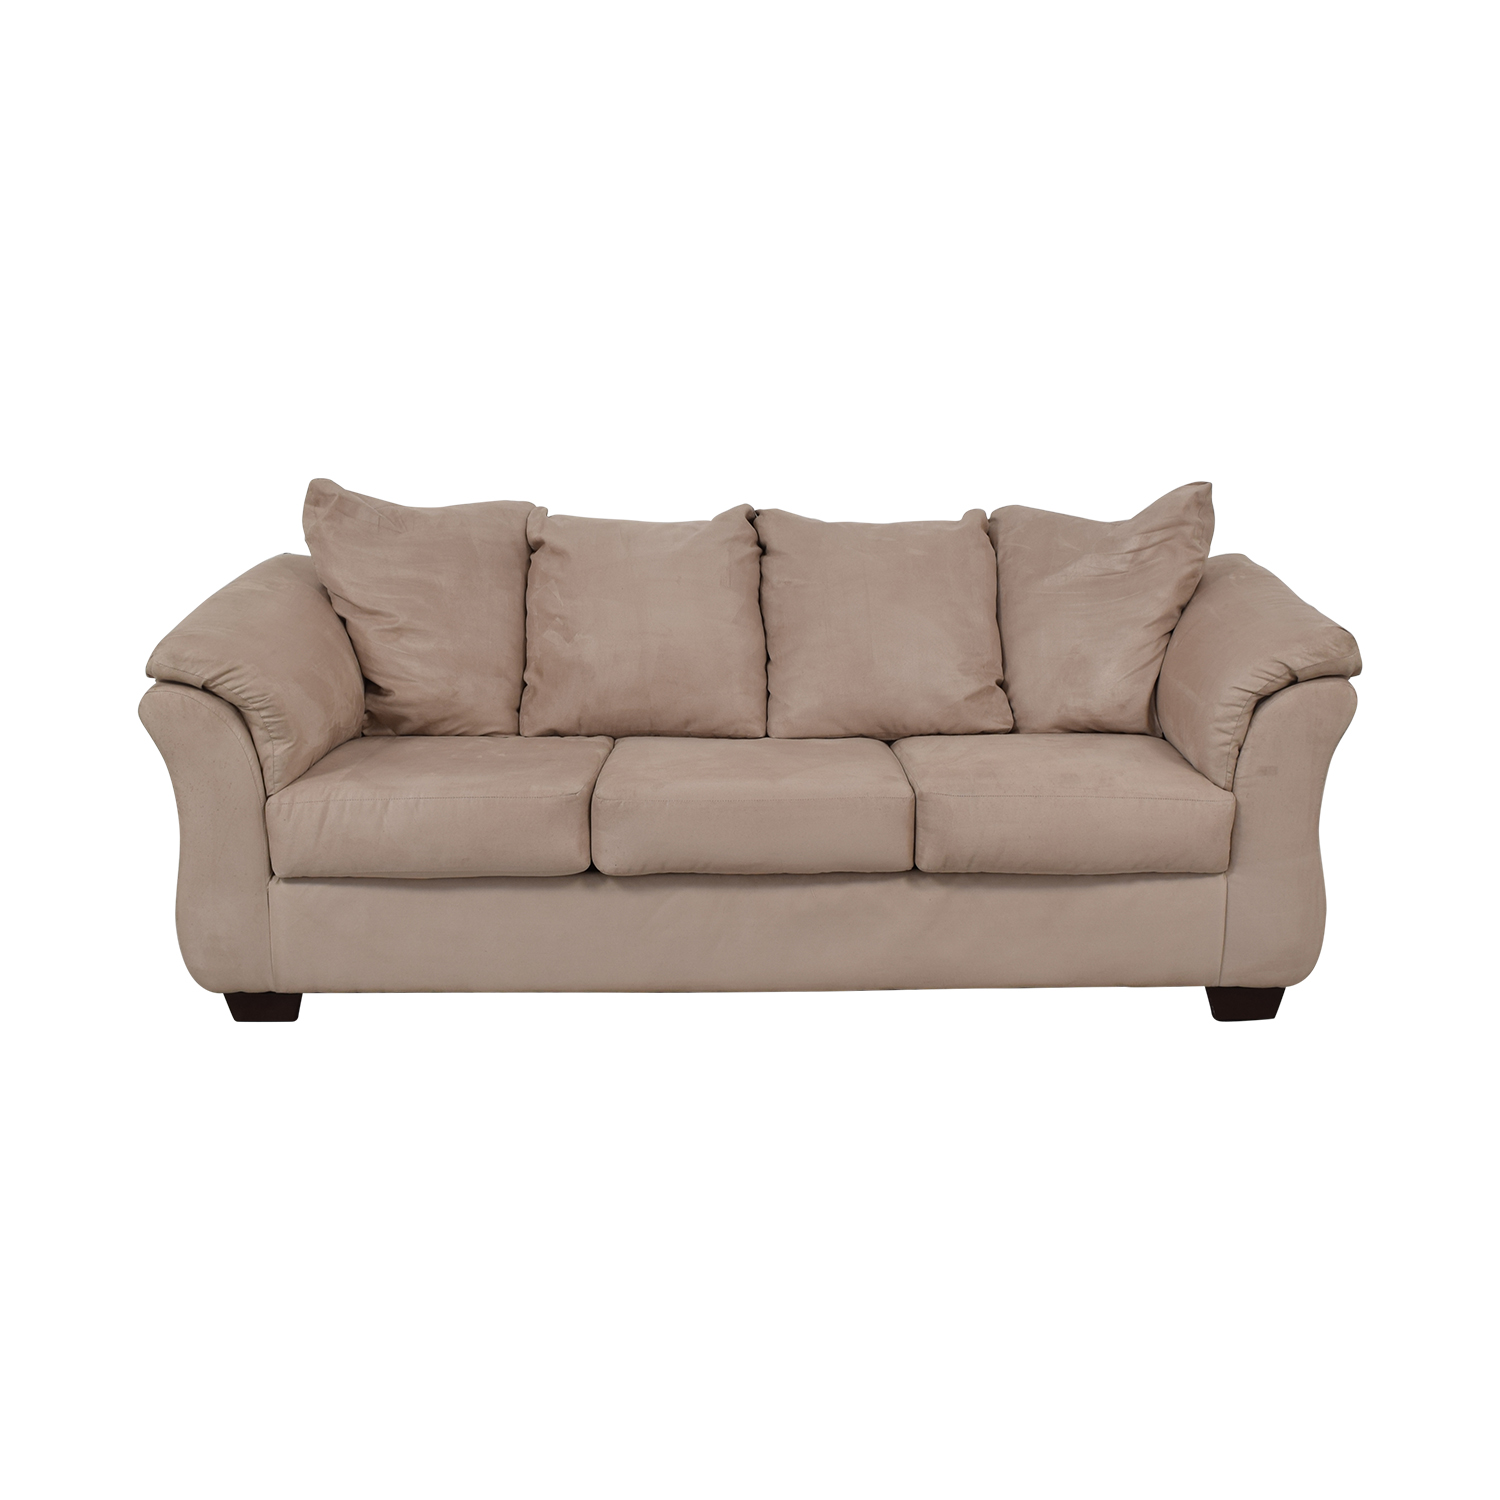 Ashley Furniture Three-Cushion Sofa / Classic Sofas